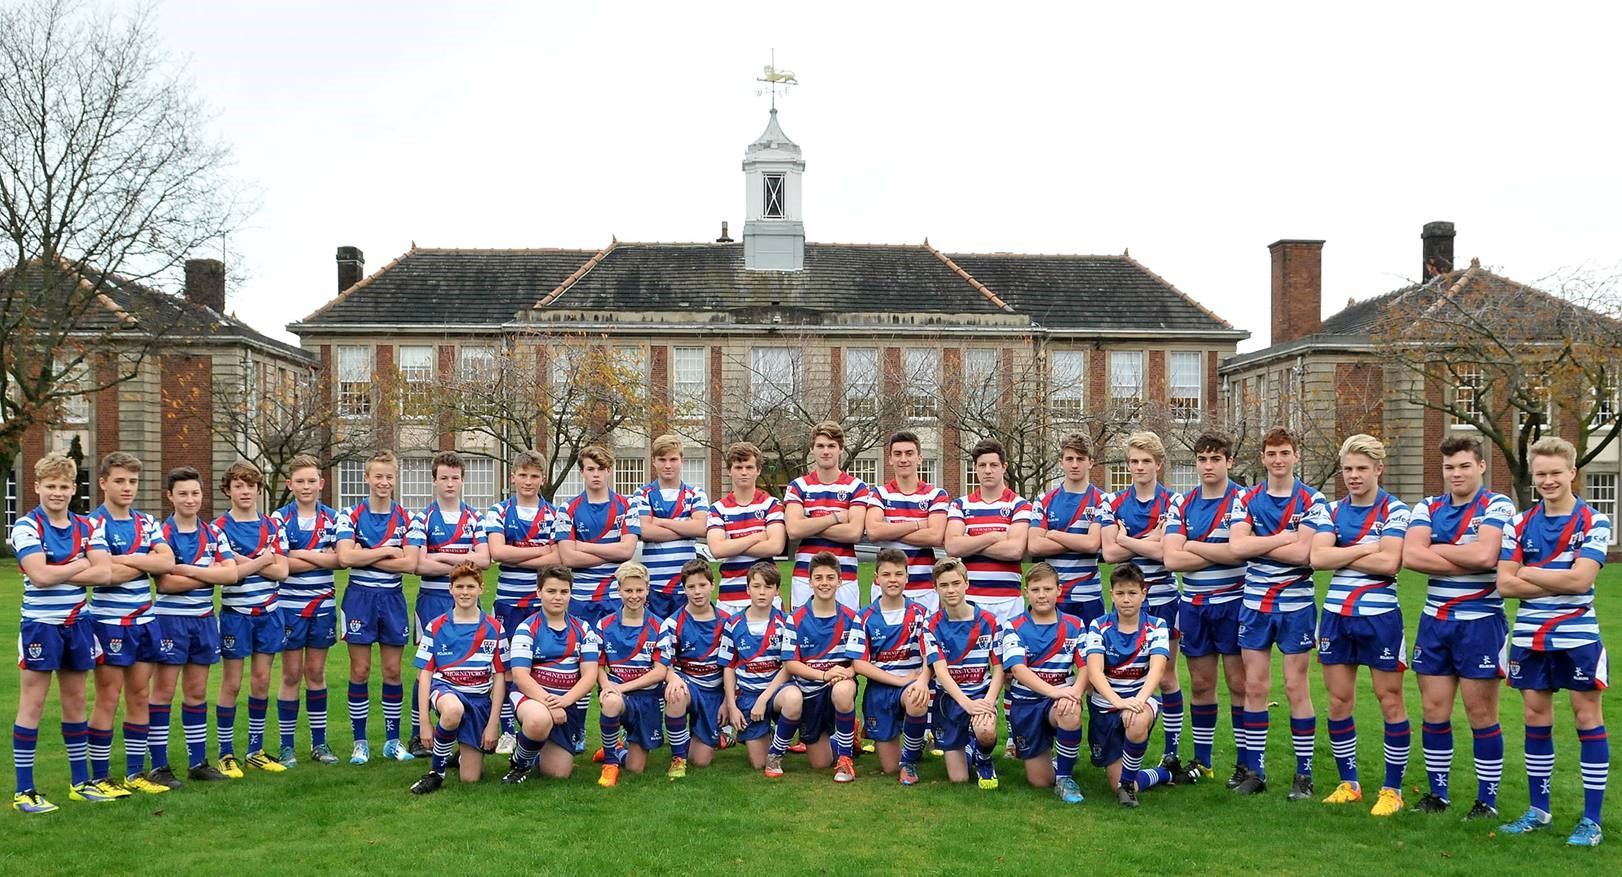 CLUB SCHOOL PARTNERSHIP REAPS RCORD CROP OF YOUNG RUGBY TALENT